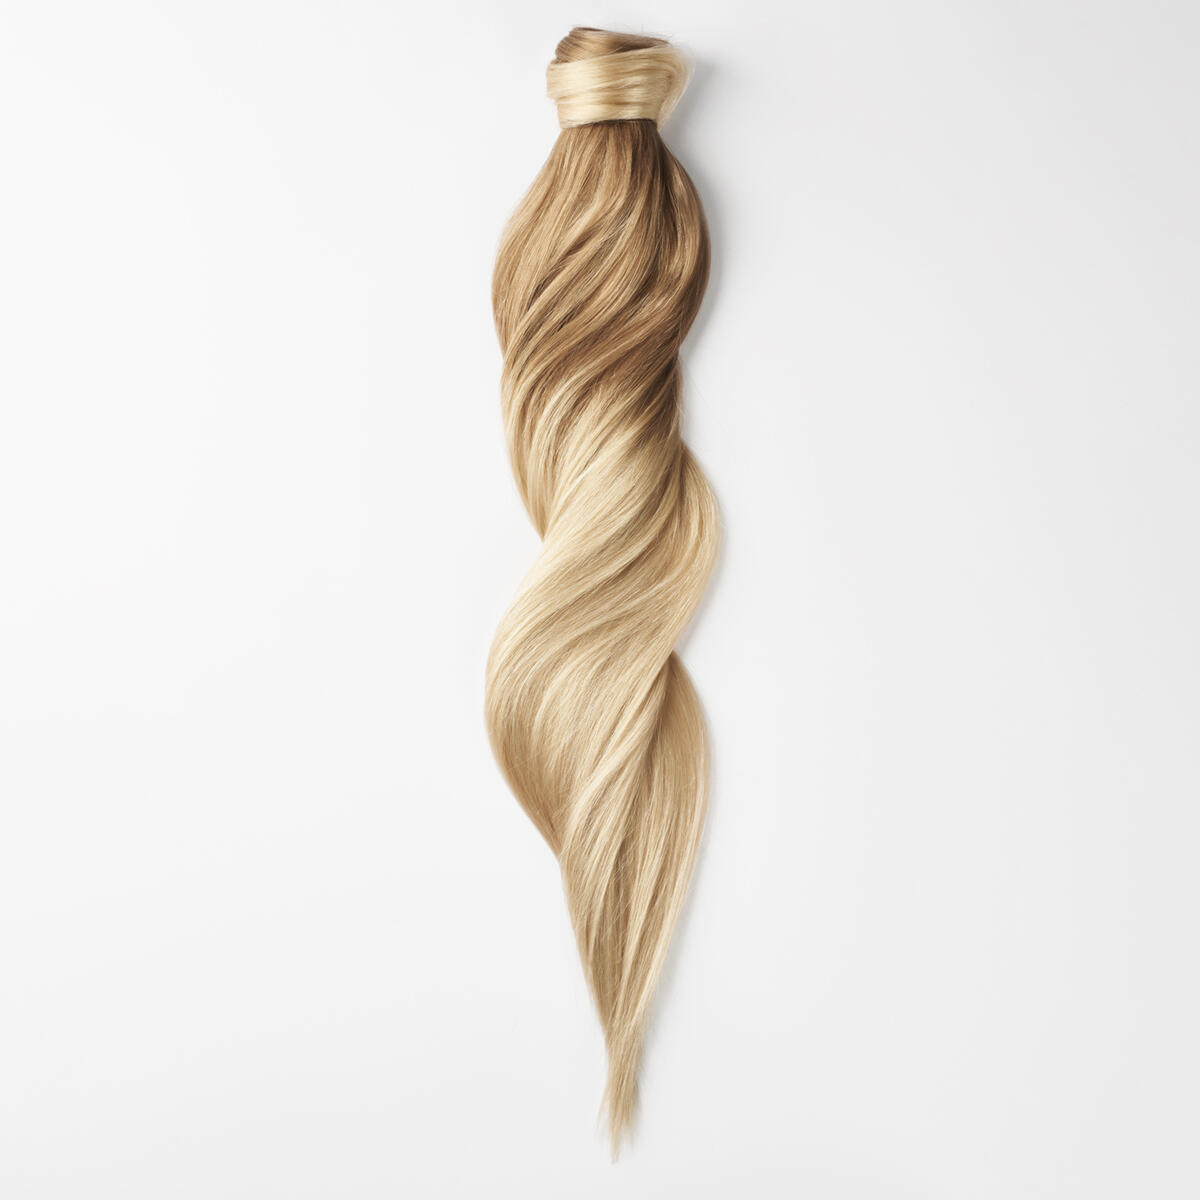 Clip-in Ponytail Ponytail made of real hair O7.3/10.8 Cendre Ash Blond Ombre 40 cm